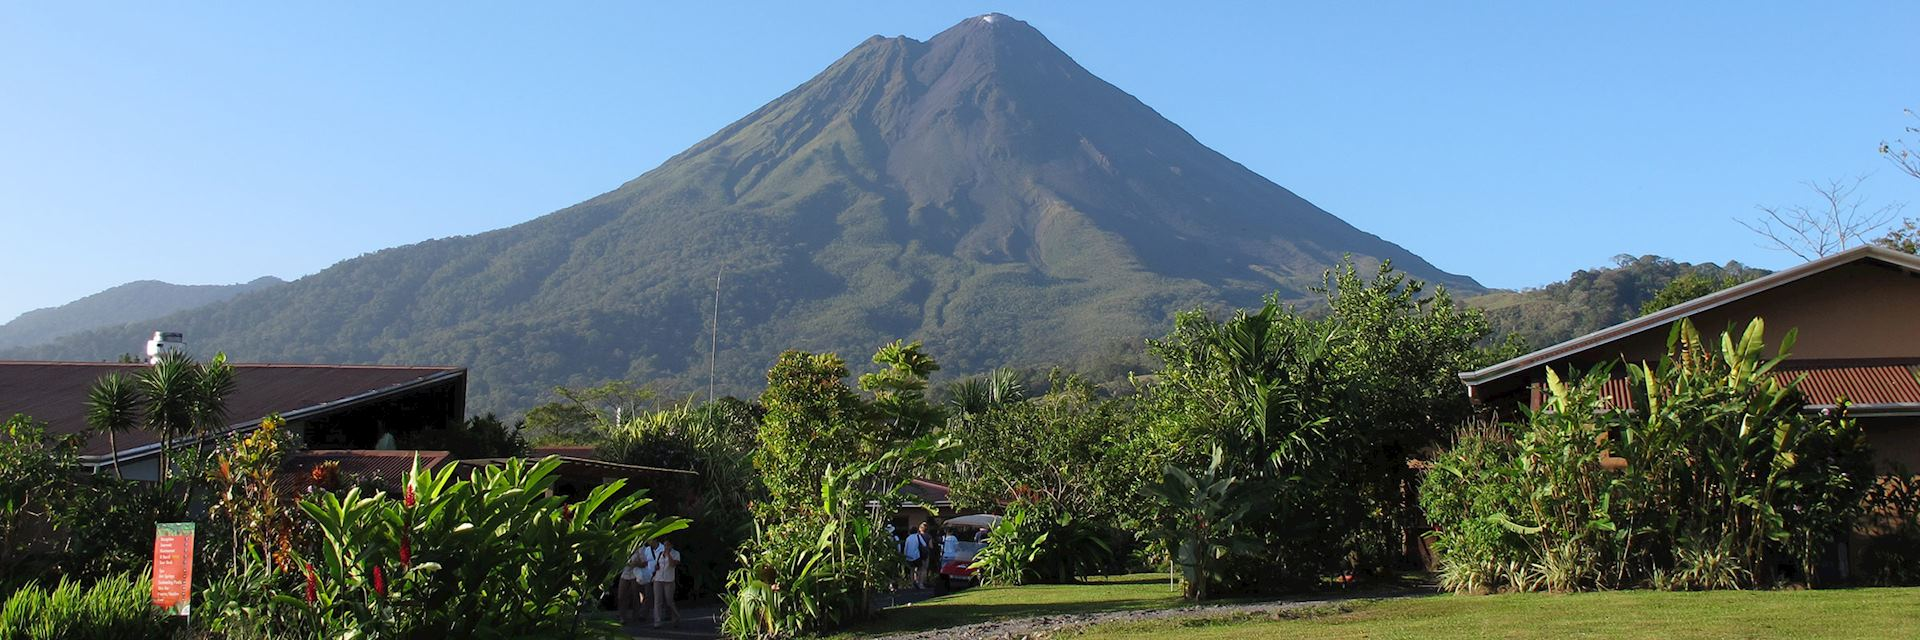 Arenal Springs Hotel, Arenal Volcano